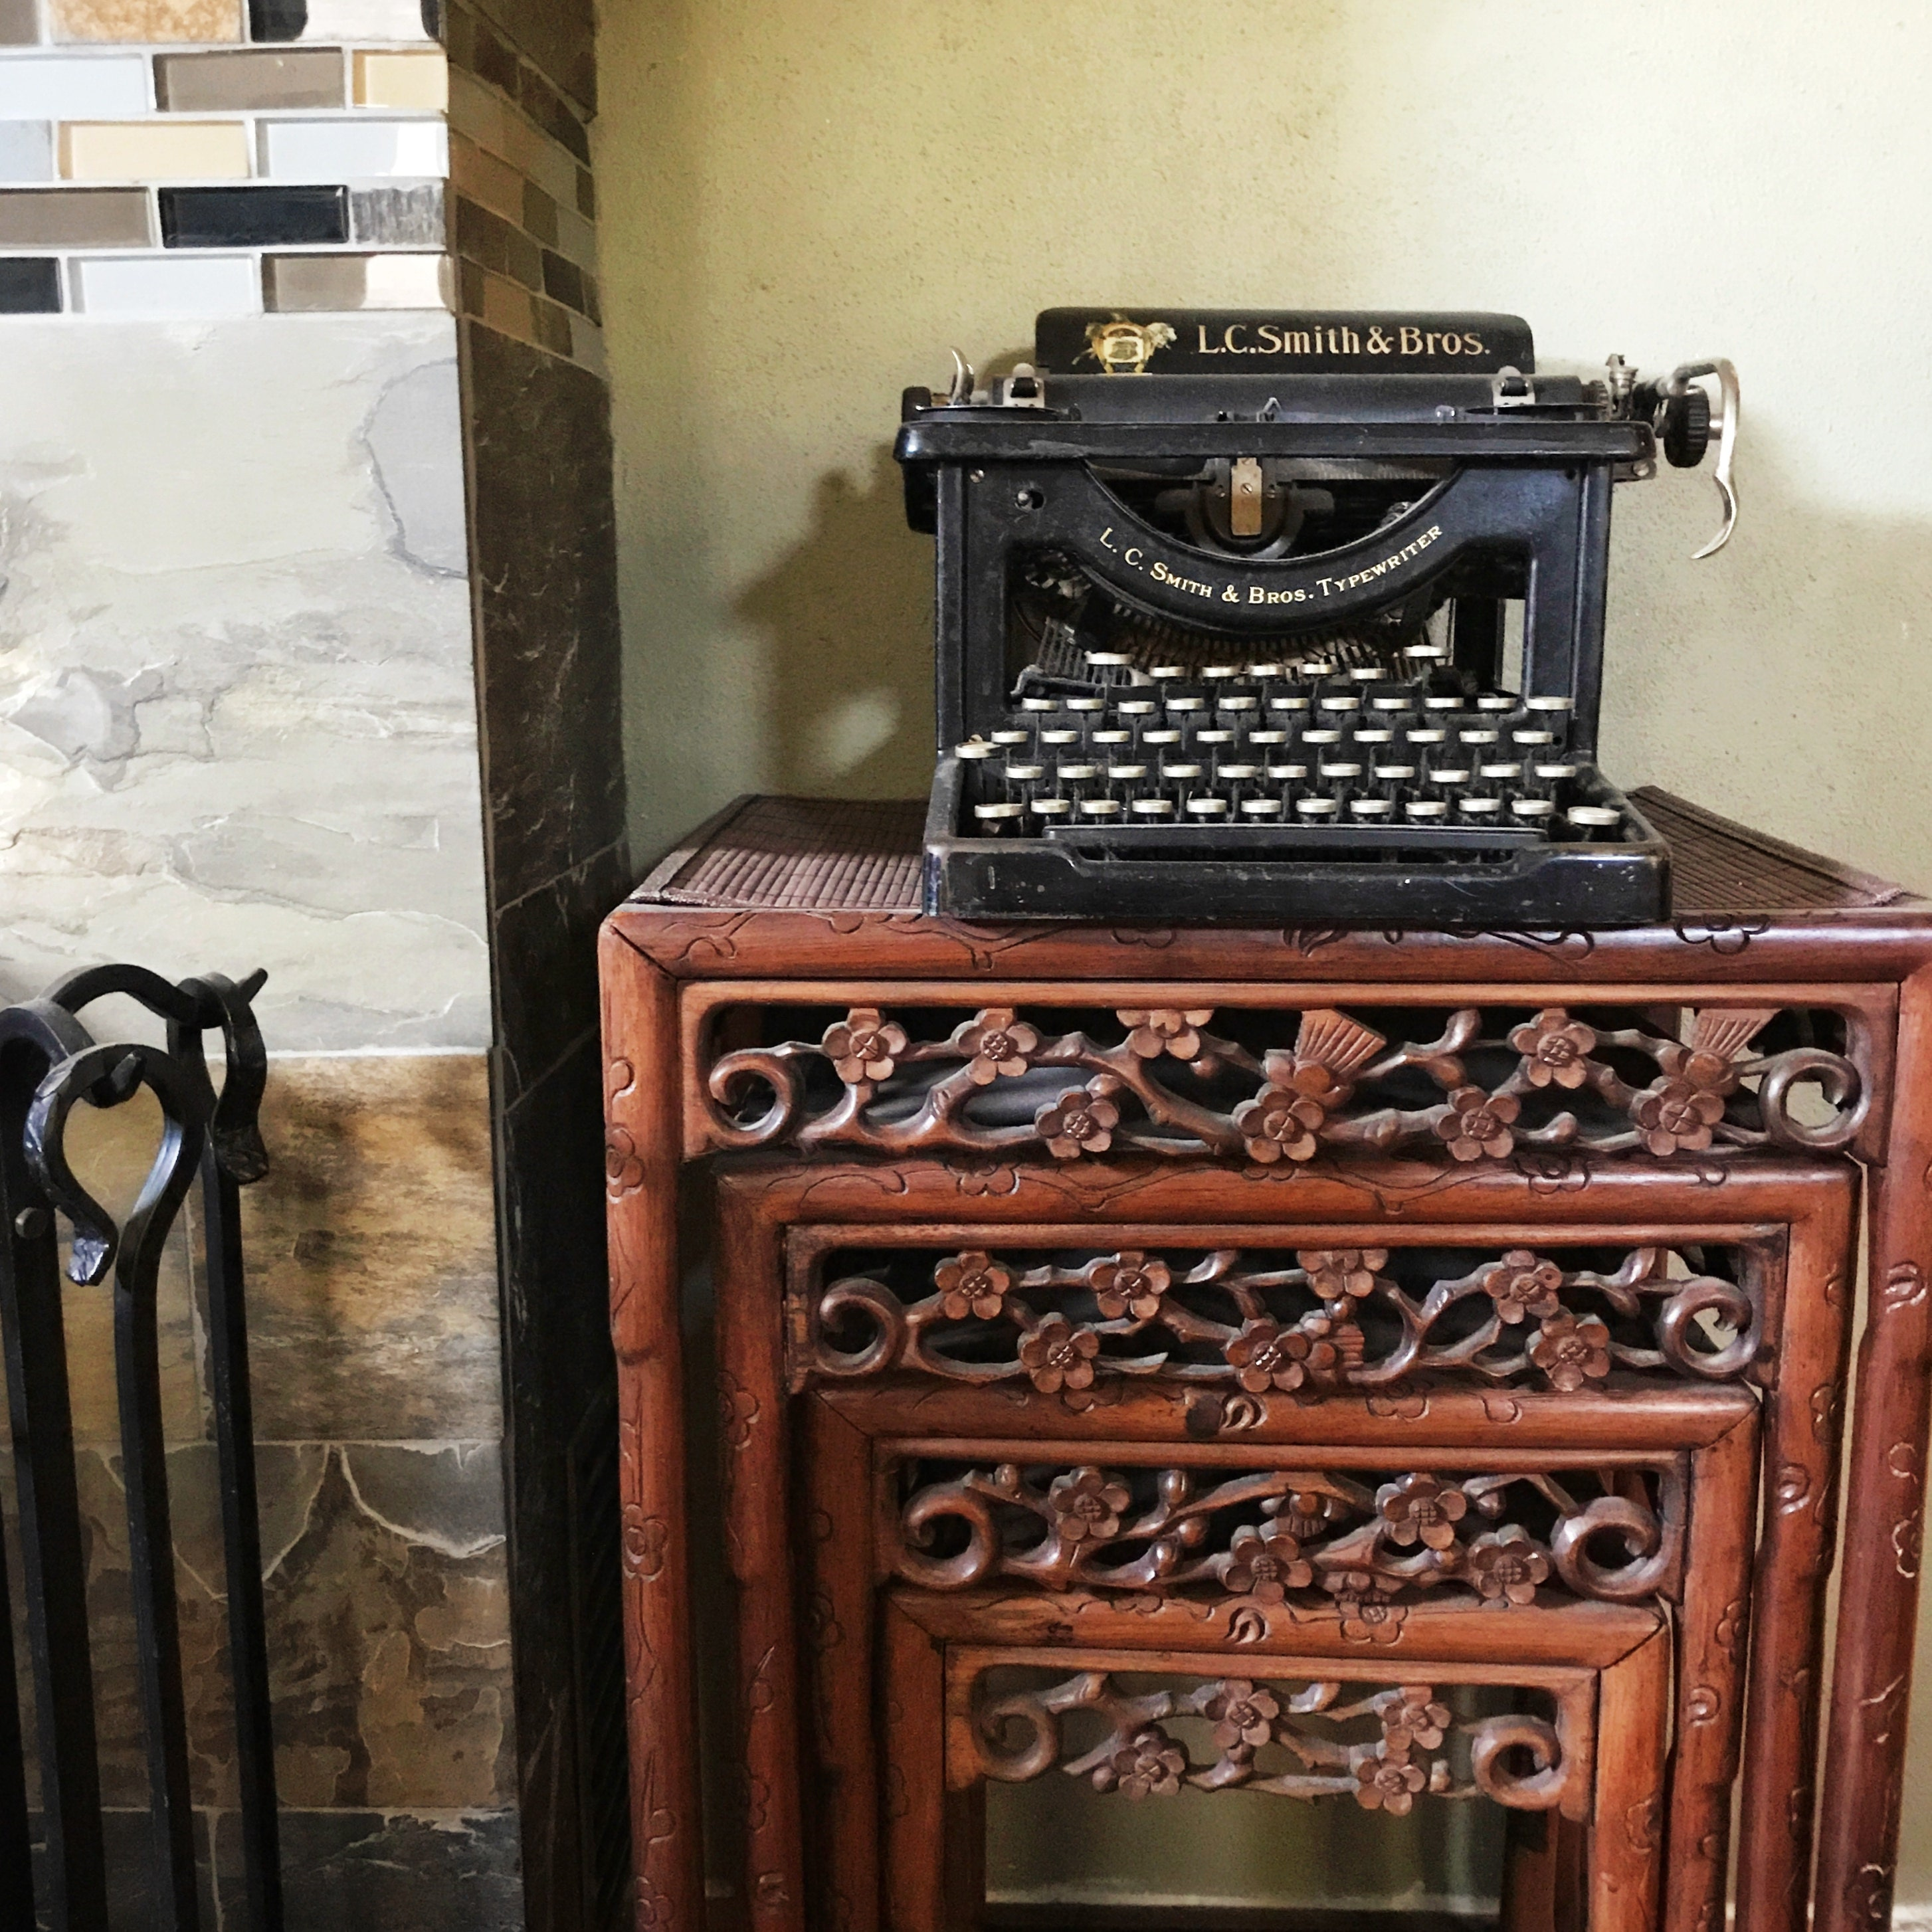 Antique 1800s L.L. Smith & Sons Typewriter